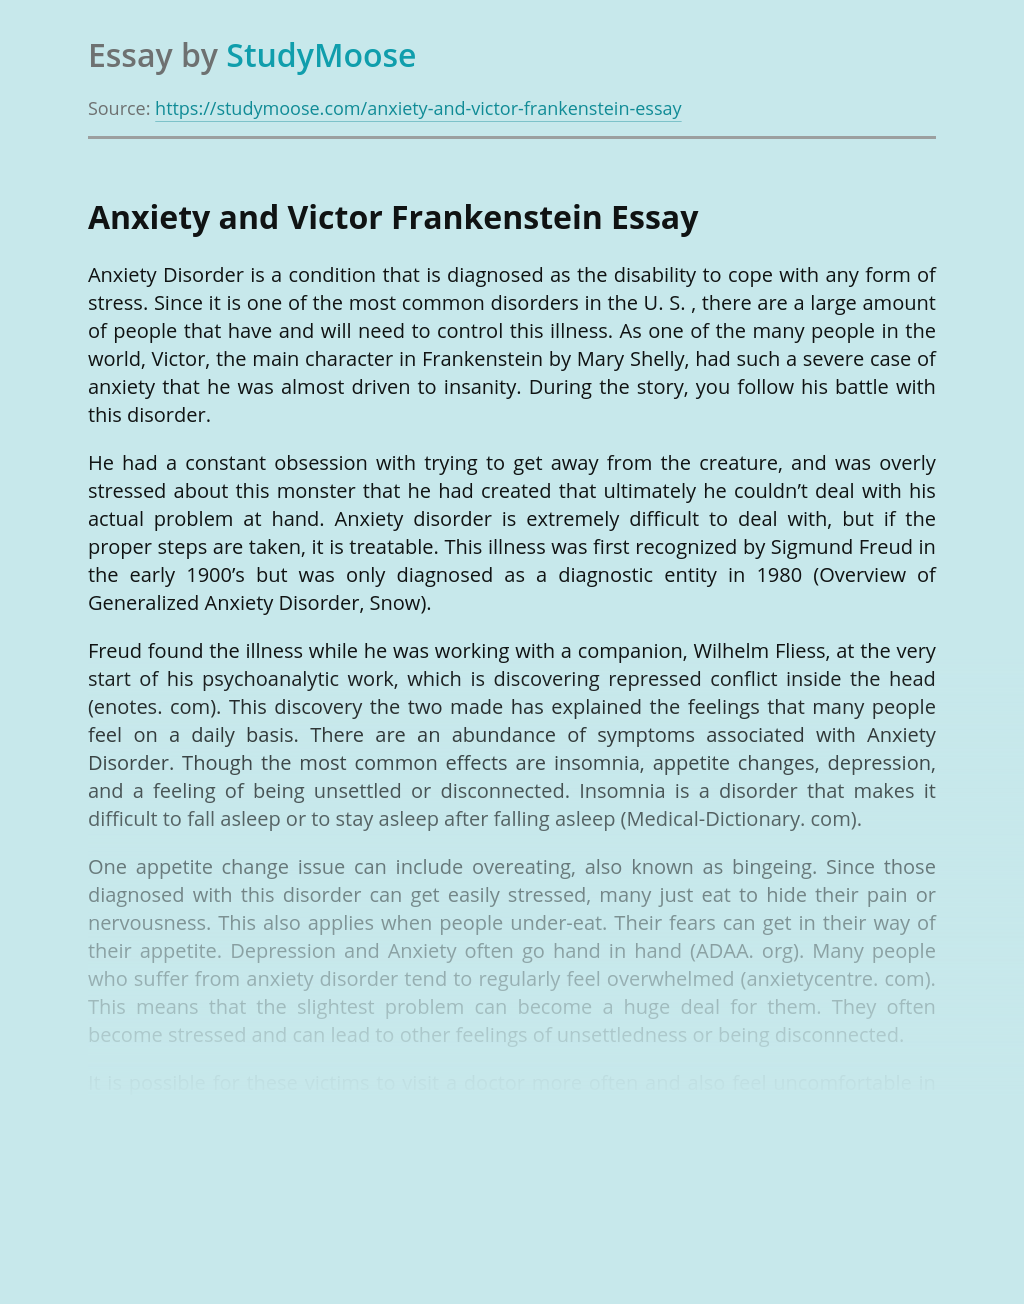 Anxiety and Victor Frankenstein